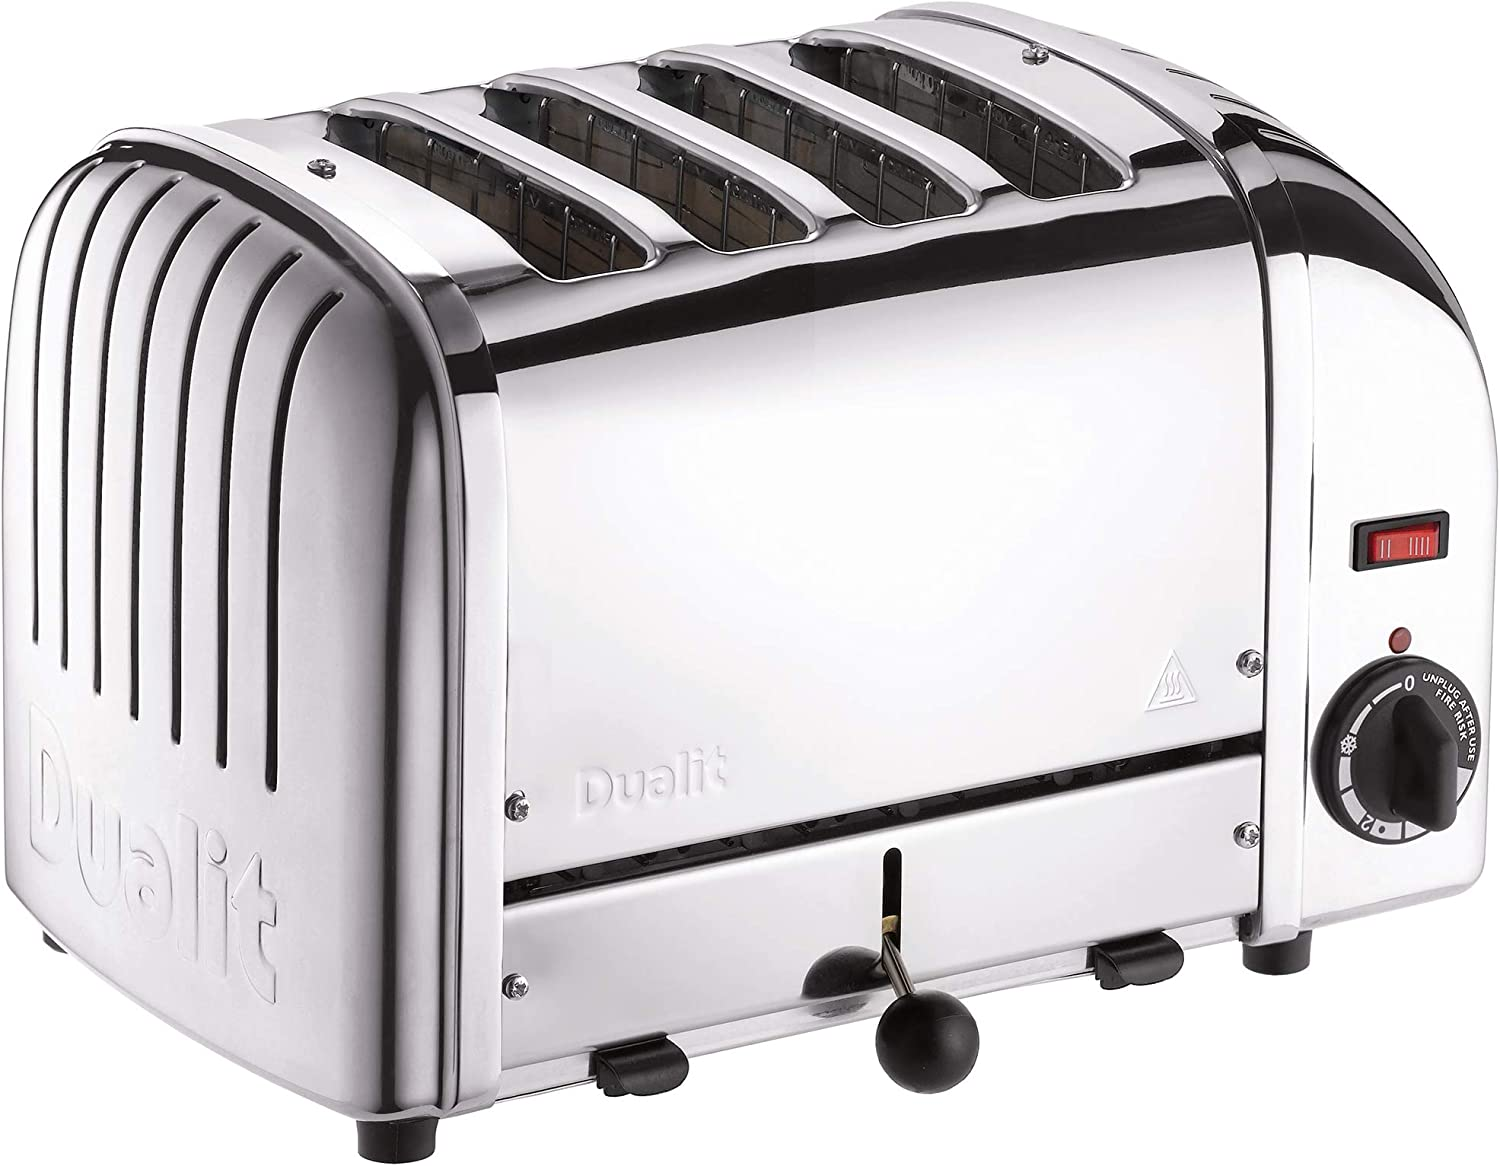 Dualit Classic 4 Slice Vario Toaster - Stainless steel, hand built in the UK - Replaceable ProHeat® elements - Heat two or four slots, defrost bread, mechanical timer - Replaceable parts